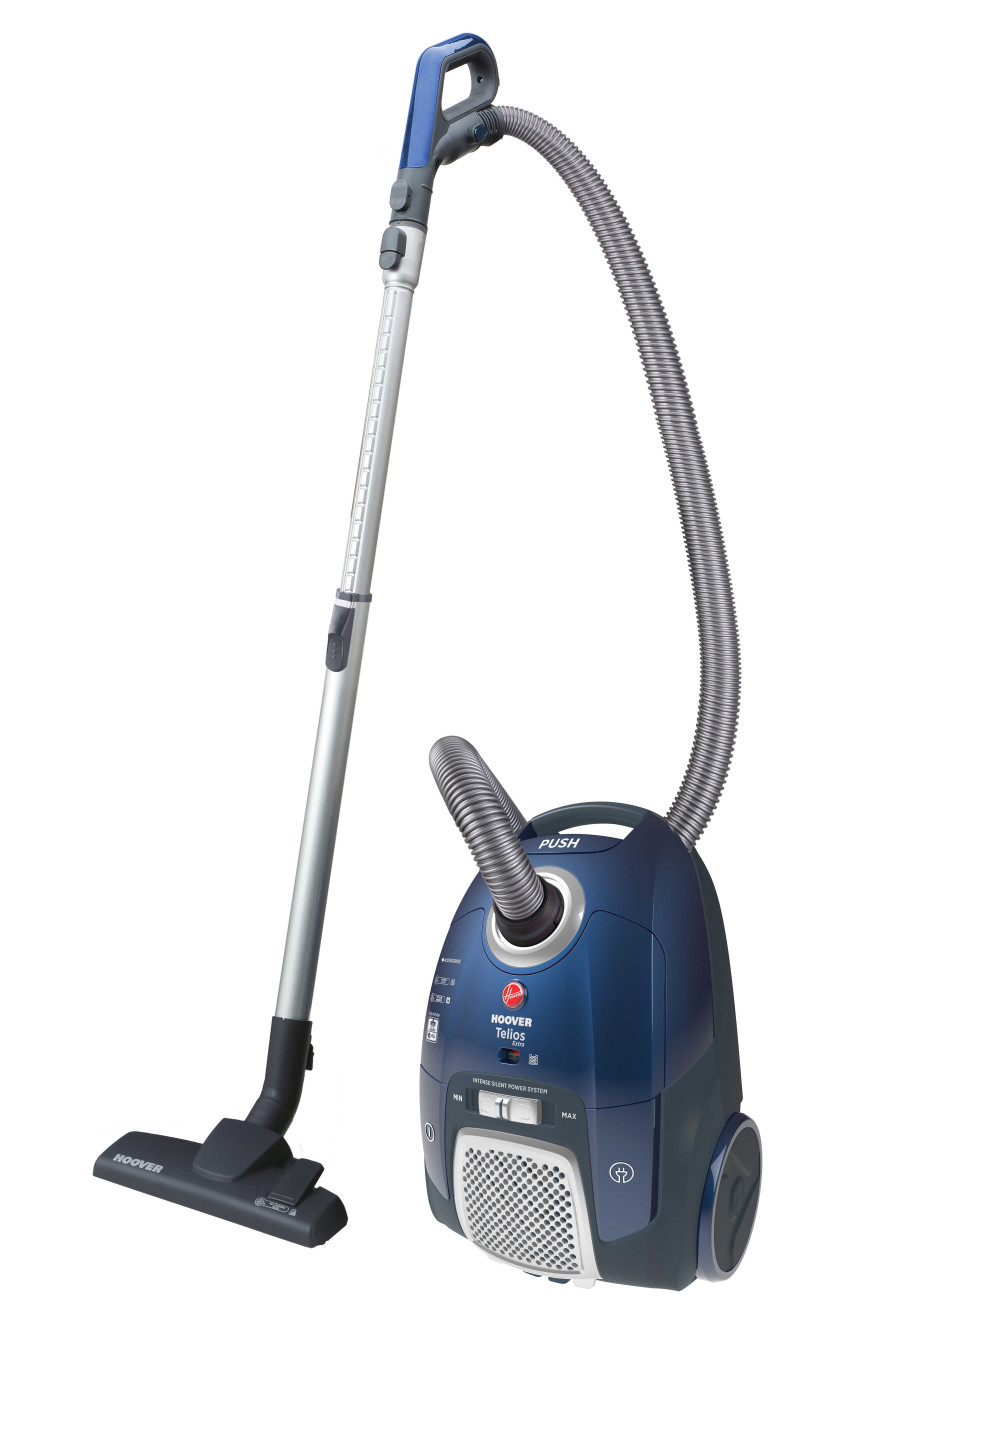 Hoover Telios Extra Bagged Cylinder Vacuum Cleaner featured image